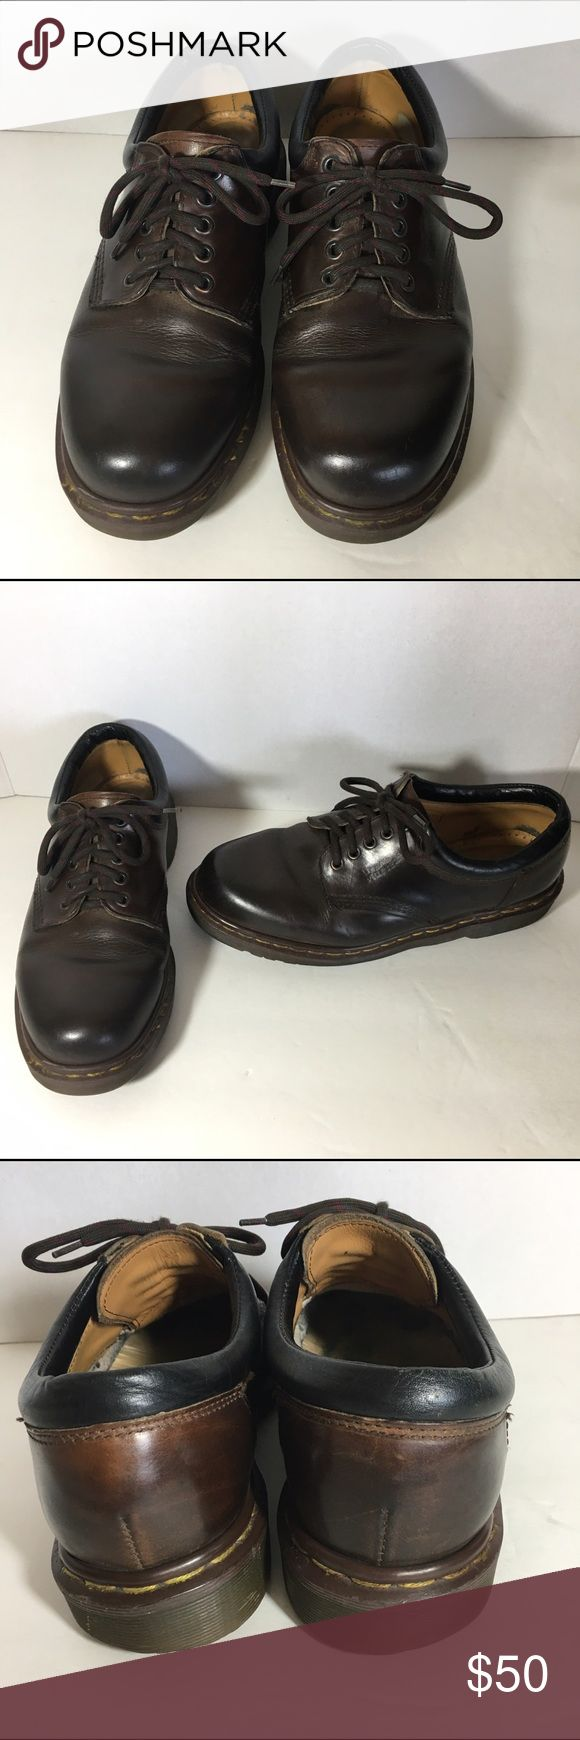 Dr. martens Men's Brown Leather Oxfords Shoes 9 10 Dr. Martens Men's 8053/59 Gaucho Crazy Horse Brown oxfords. The outsides are in good condition.  The insides show wear but no tears.   The sides where The size should be labeled has the lettering rubbed off, but there is a number nine on the inside foot area of the shoe. I believe these are a UK size 9 which is a men's US size 10. They fit my husband like a 10 usually does.  They measure about 12 inches exactly on the bottoms from end to end…